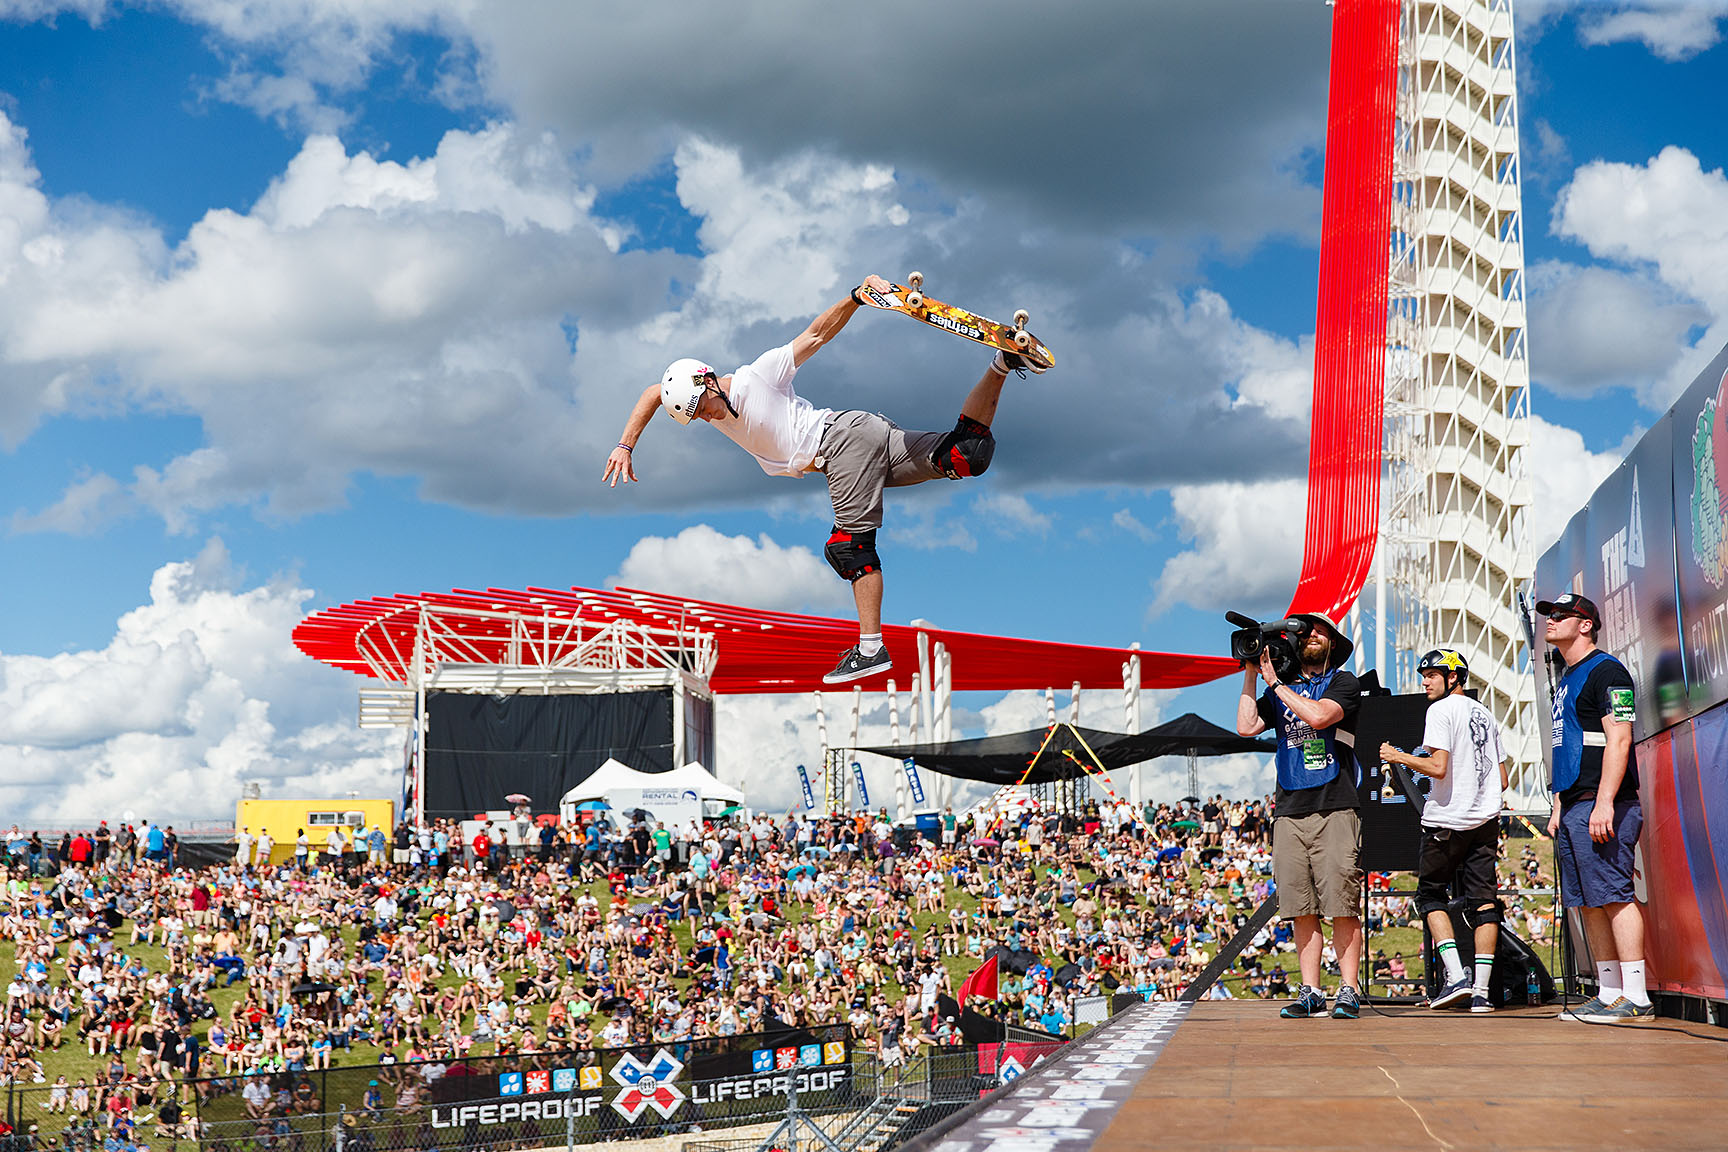 Skateboard Vert's field of competitors are caught at a curious trifecta between the esteemed veterans, the young upstarts and a new, unexpected U.K. invasion that includes Paul-Luc Ronchetti. In 2015, Ronchetti was able to podium, but was unable to replicate his medaled success in 2016. However, his style and extension were second to none on Friday at X Games Austin 2016.